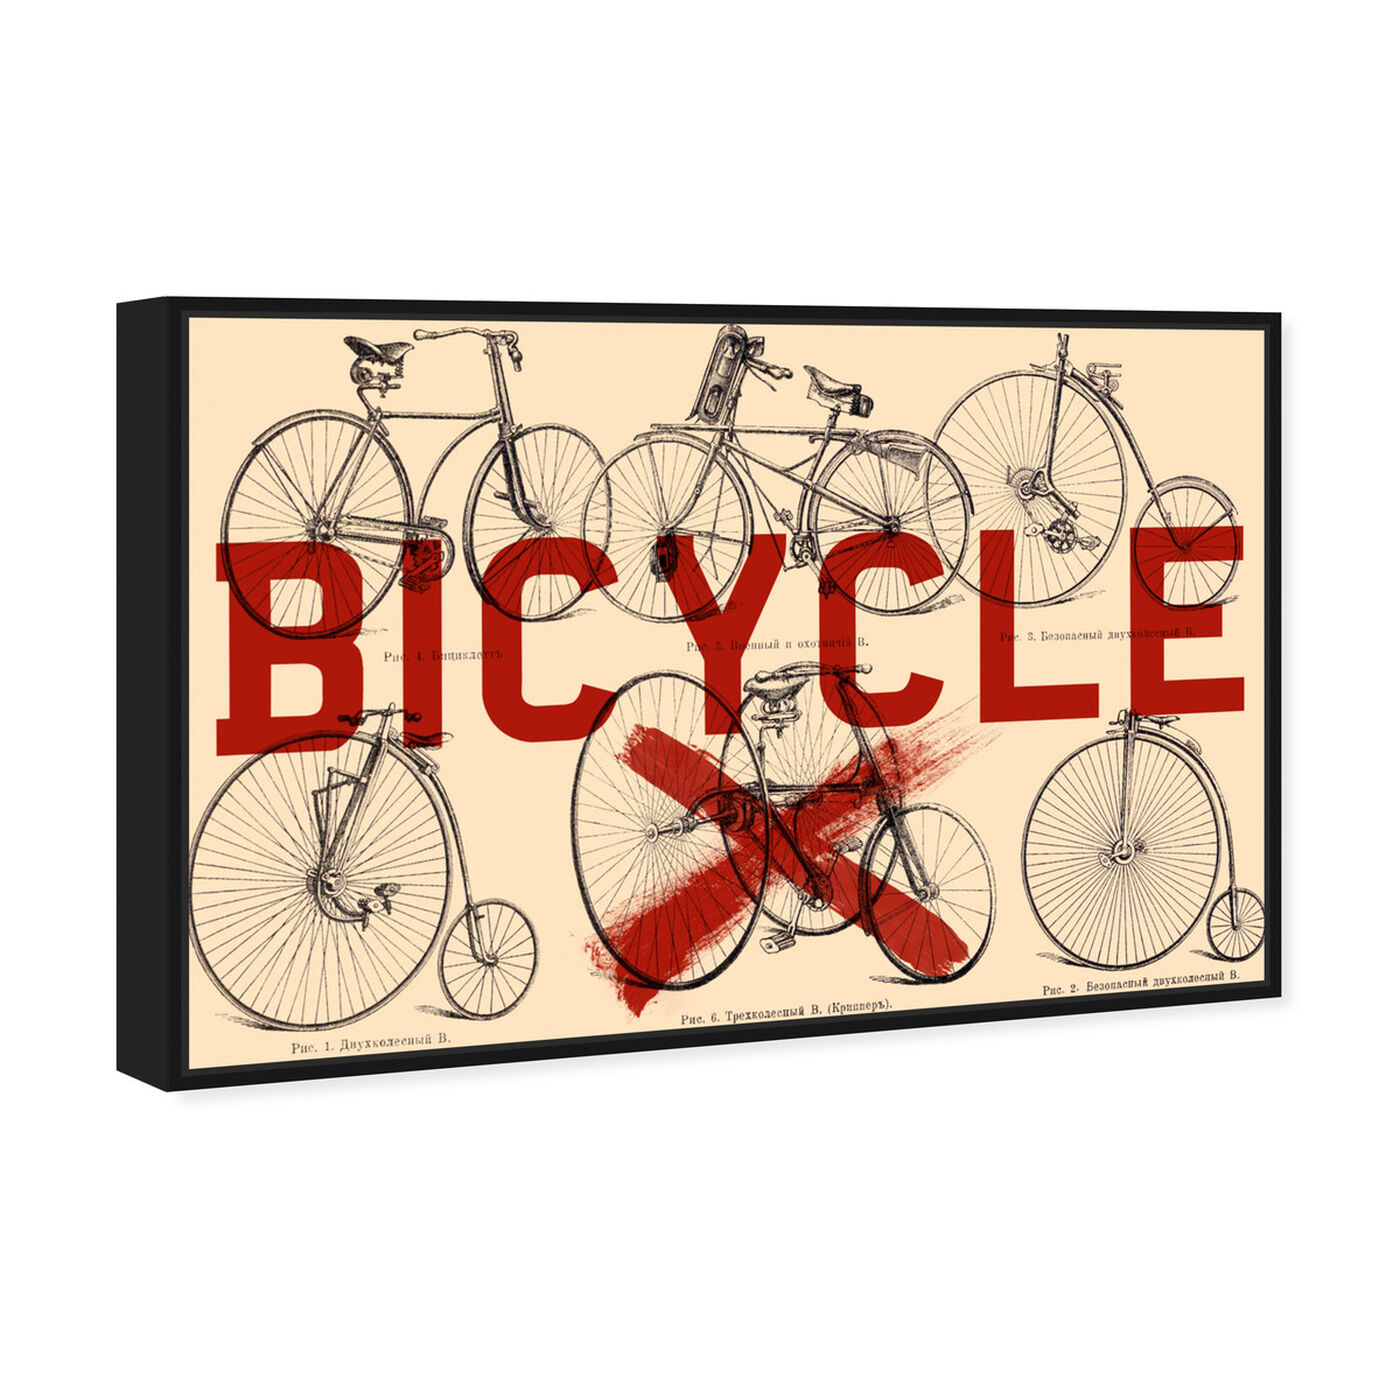 Angled view of Bicycle featuring transportation and bicycles art.